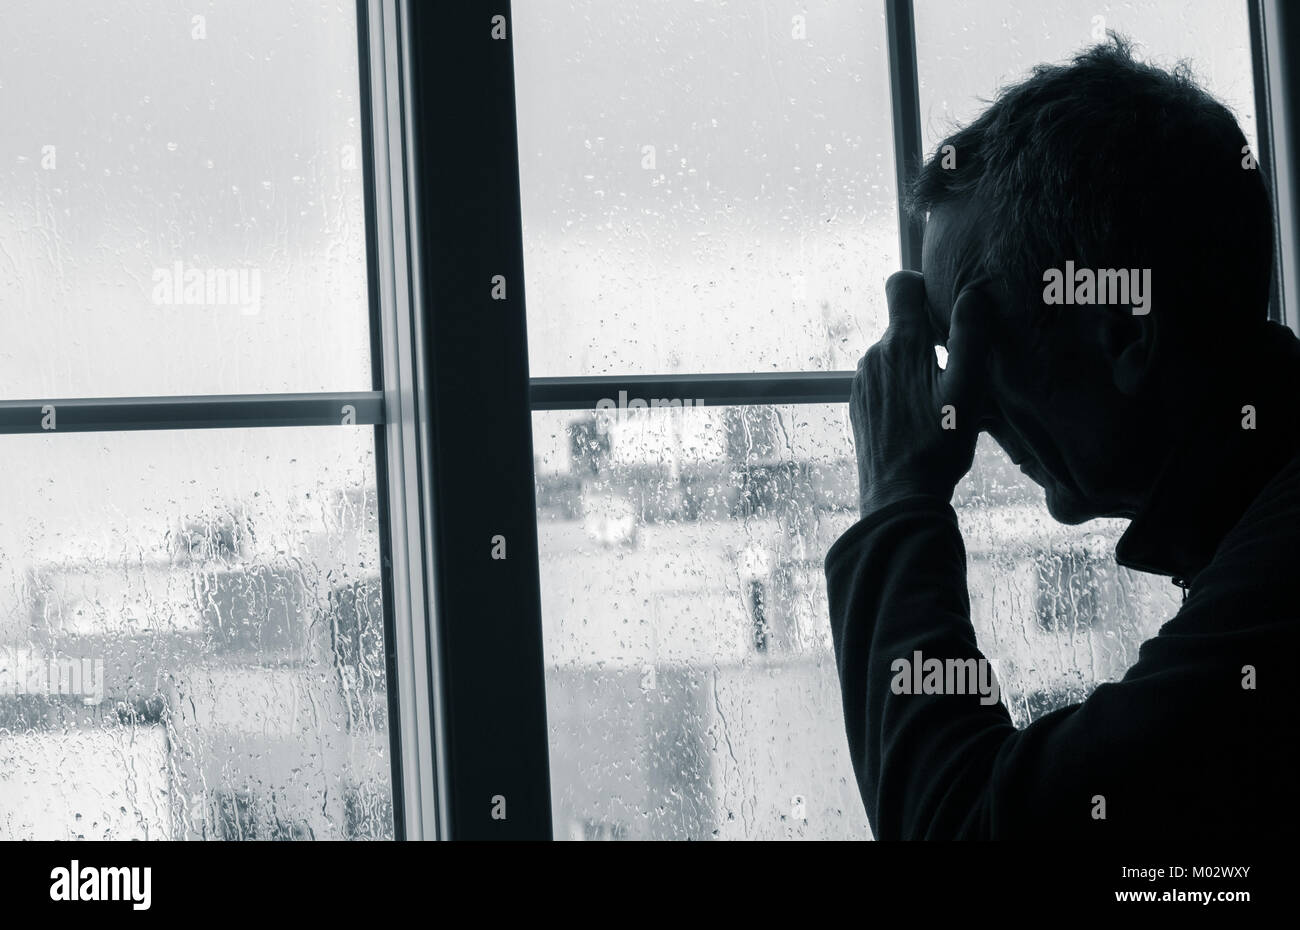 Mature man with hand on head near window on a rainy day. Concept image for depression, male depression, mental health, - Stock Image